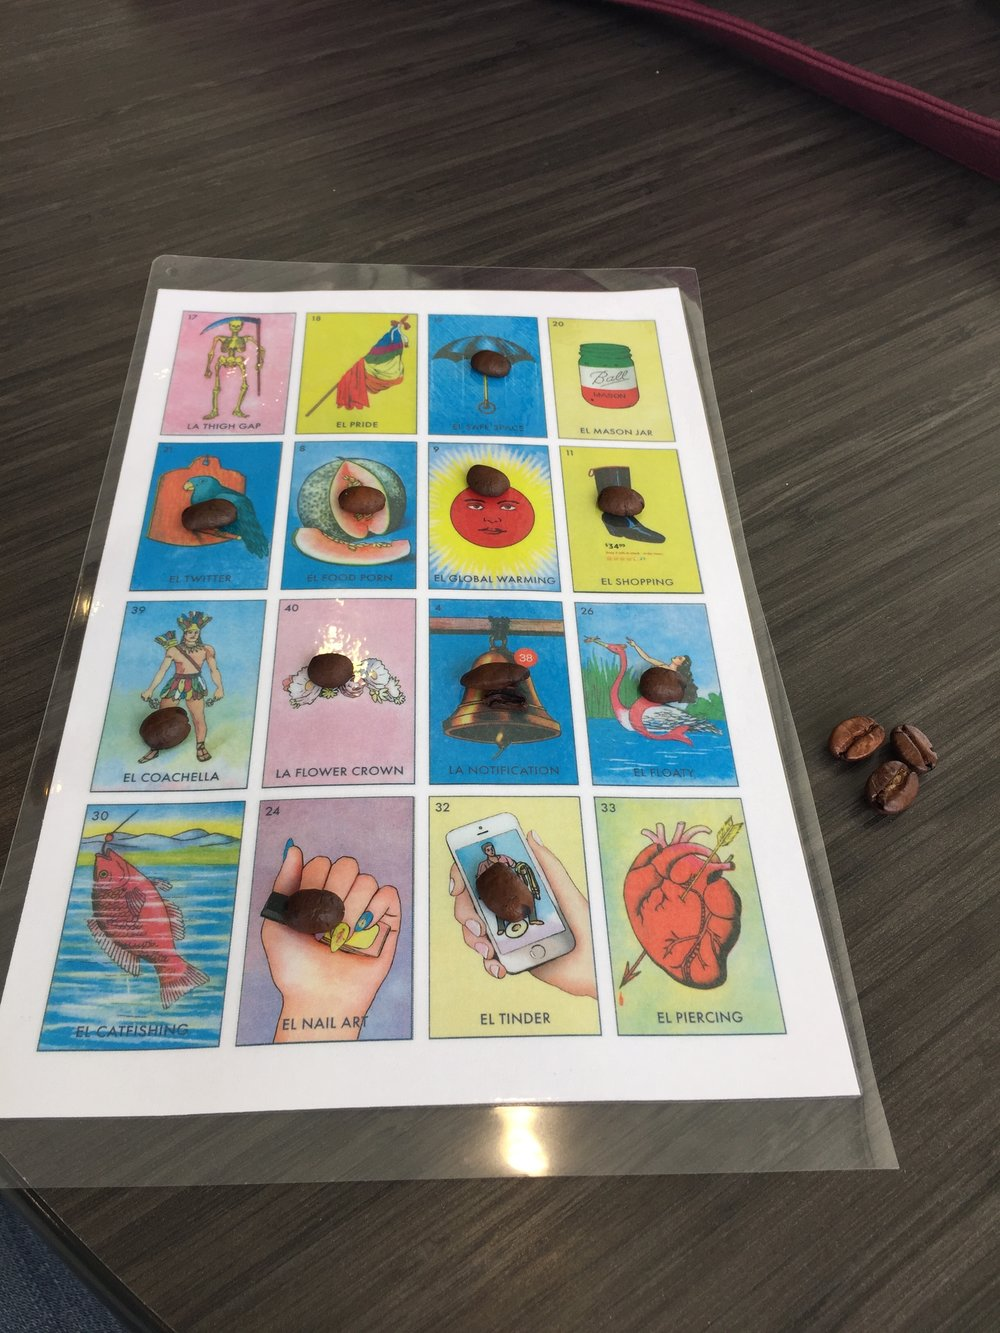 The recreated version of the loteria board consists of images representing today's trends well-known by millennials.